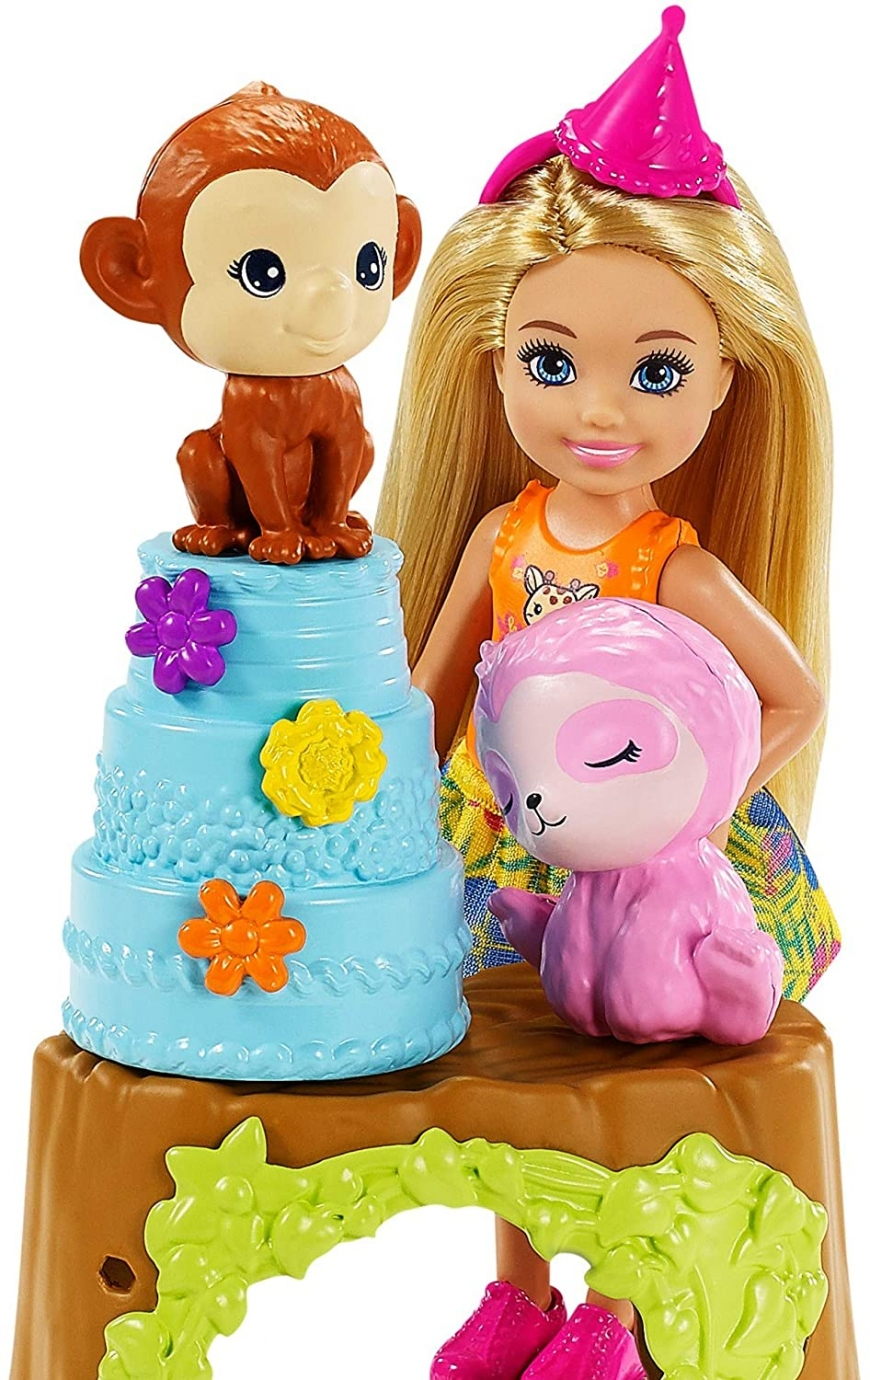 Barbie and Chelsea The Lost Birthday playset